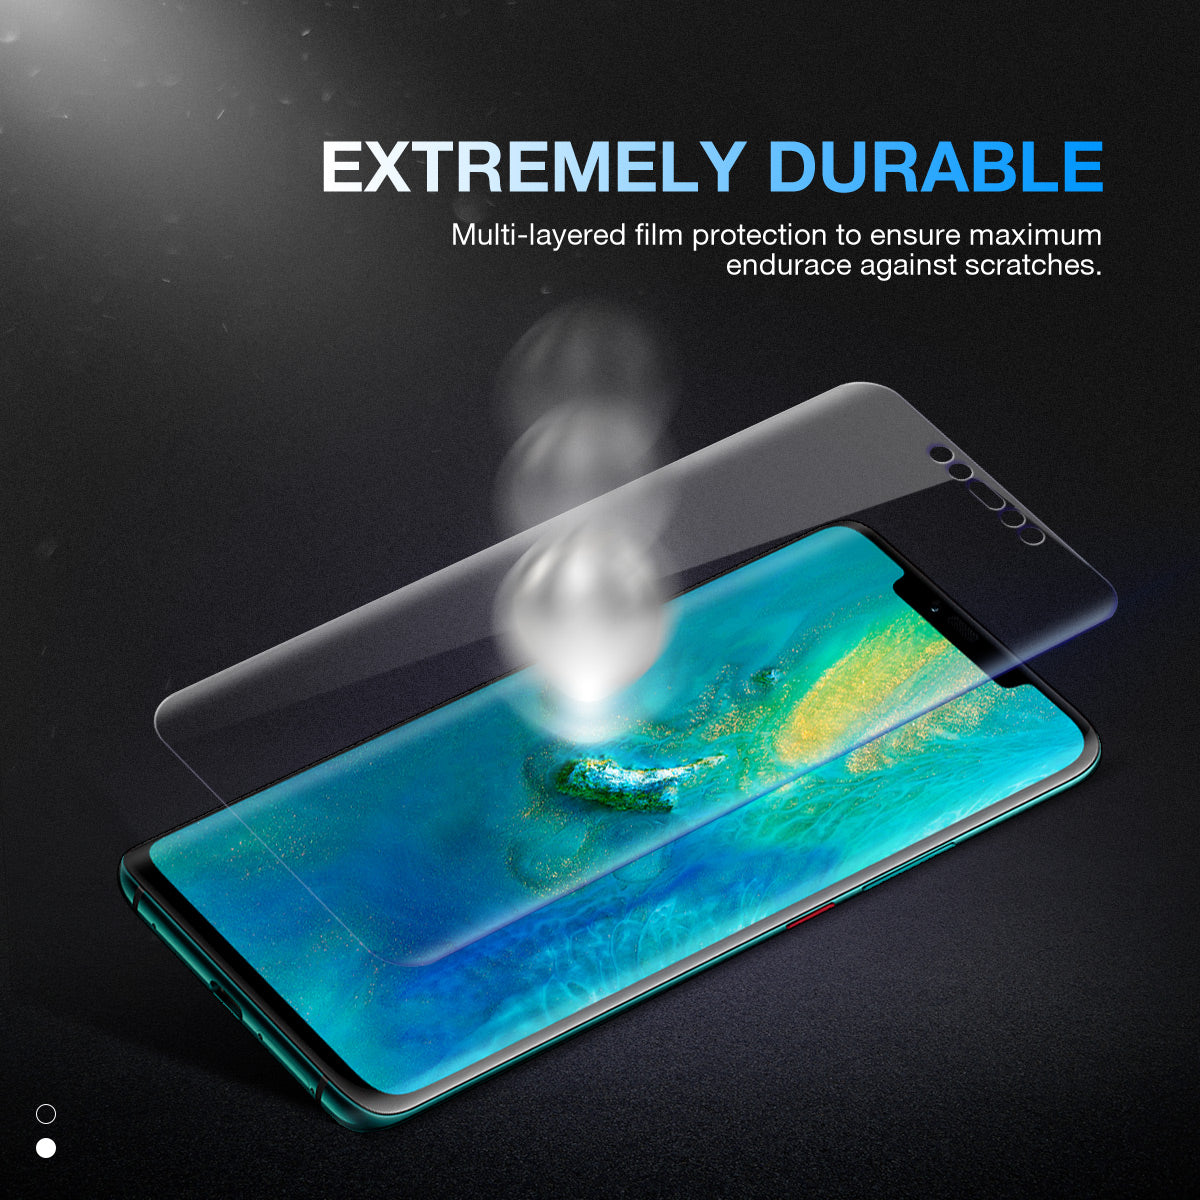 Huawei Mate 20 Pro Screen Protector, Genuine MaxShield Aqua Crystal Shield